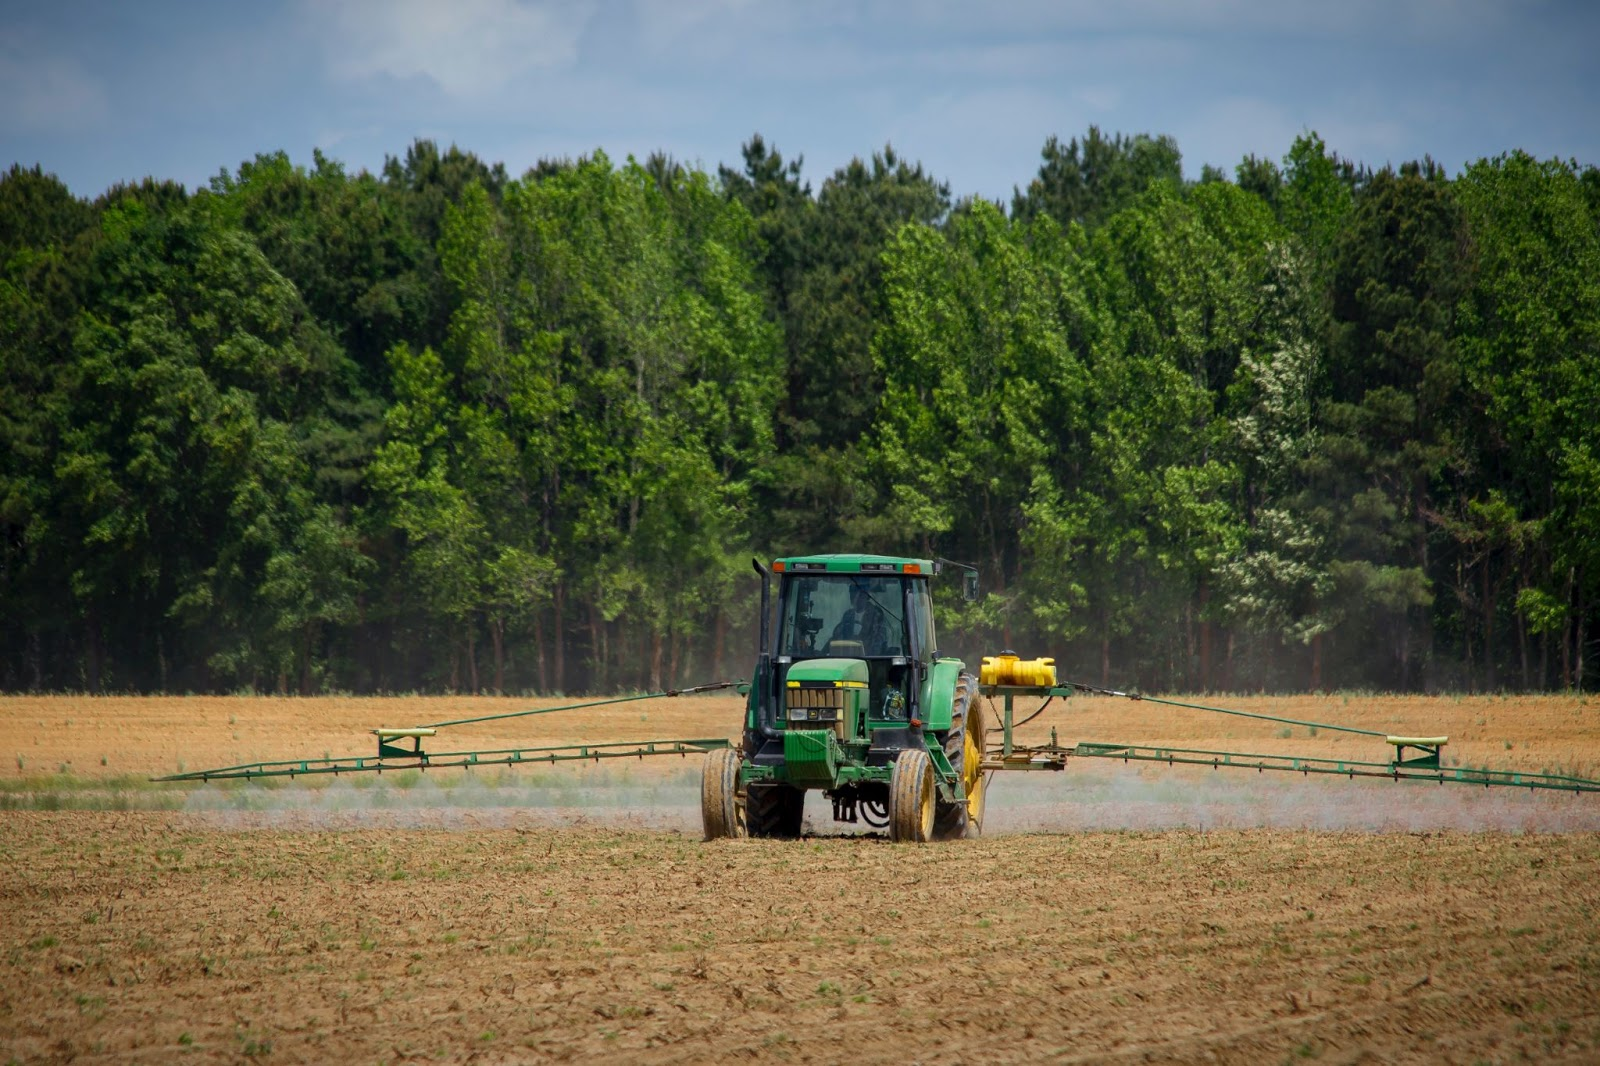 a tractor operating on a field